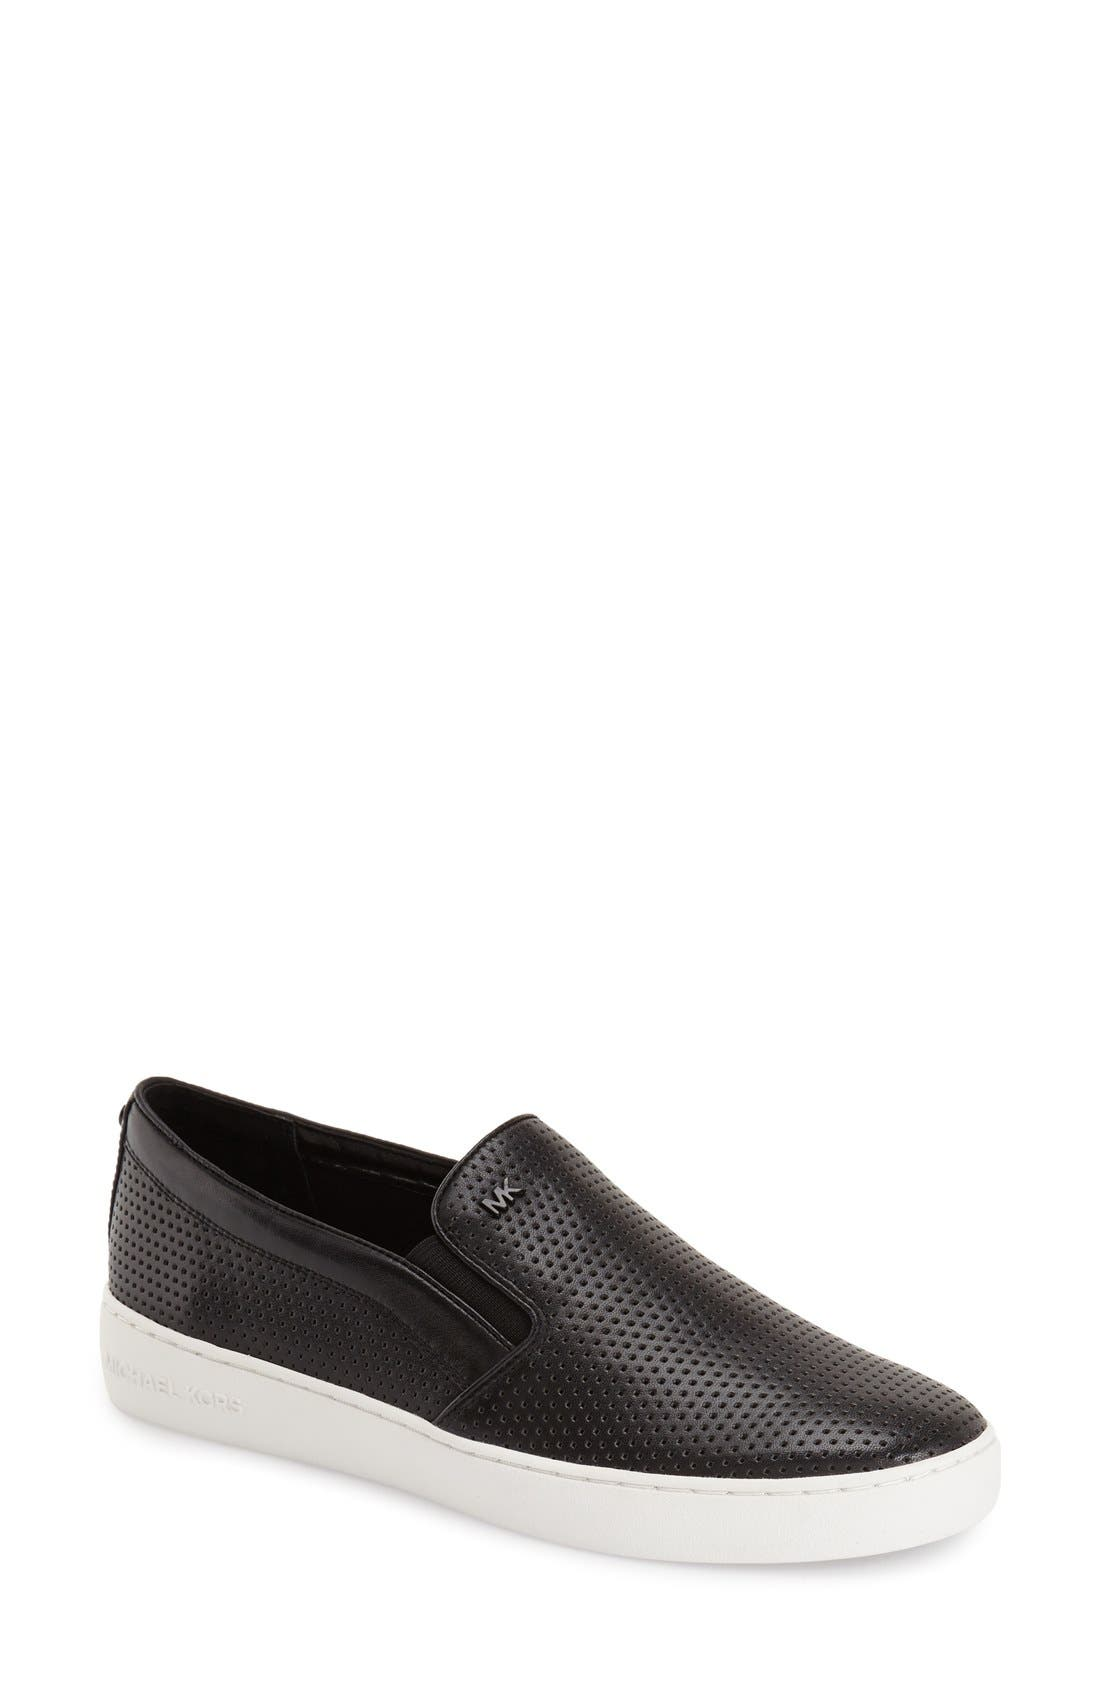 Keaton Slip-On Sneaker,                             Main thumbnail 19, color,